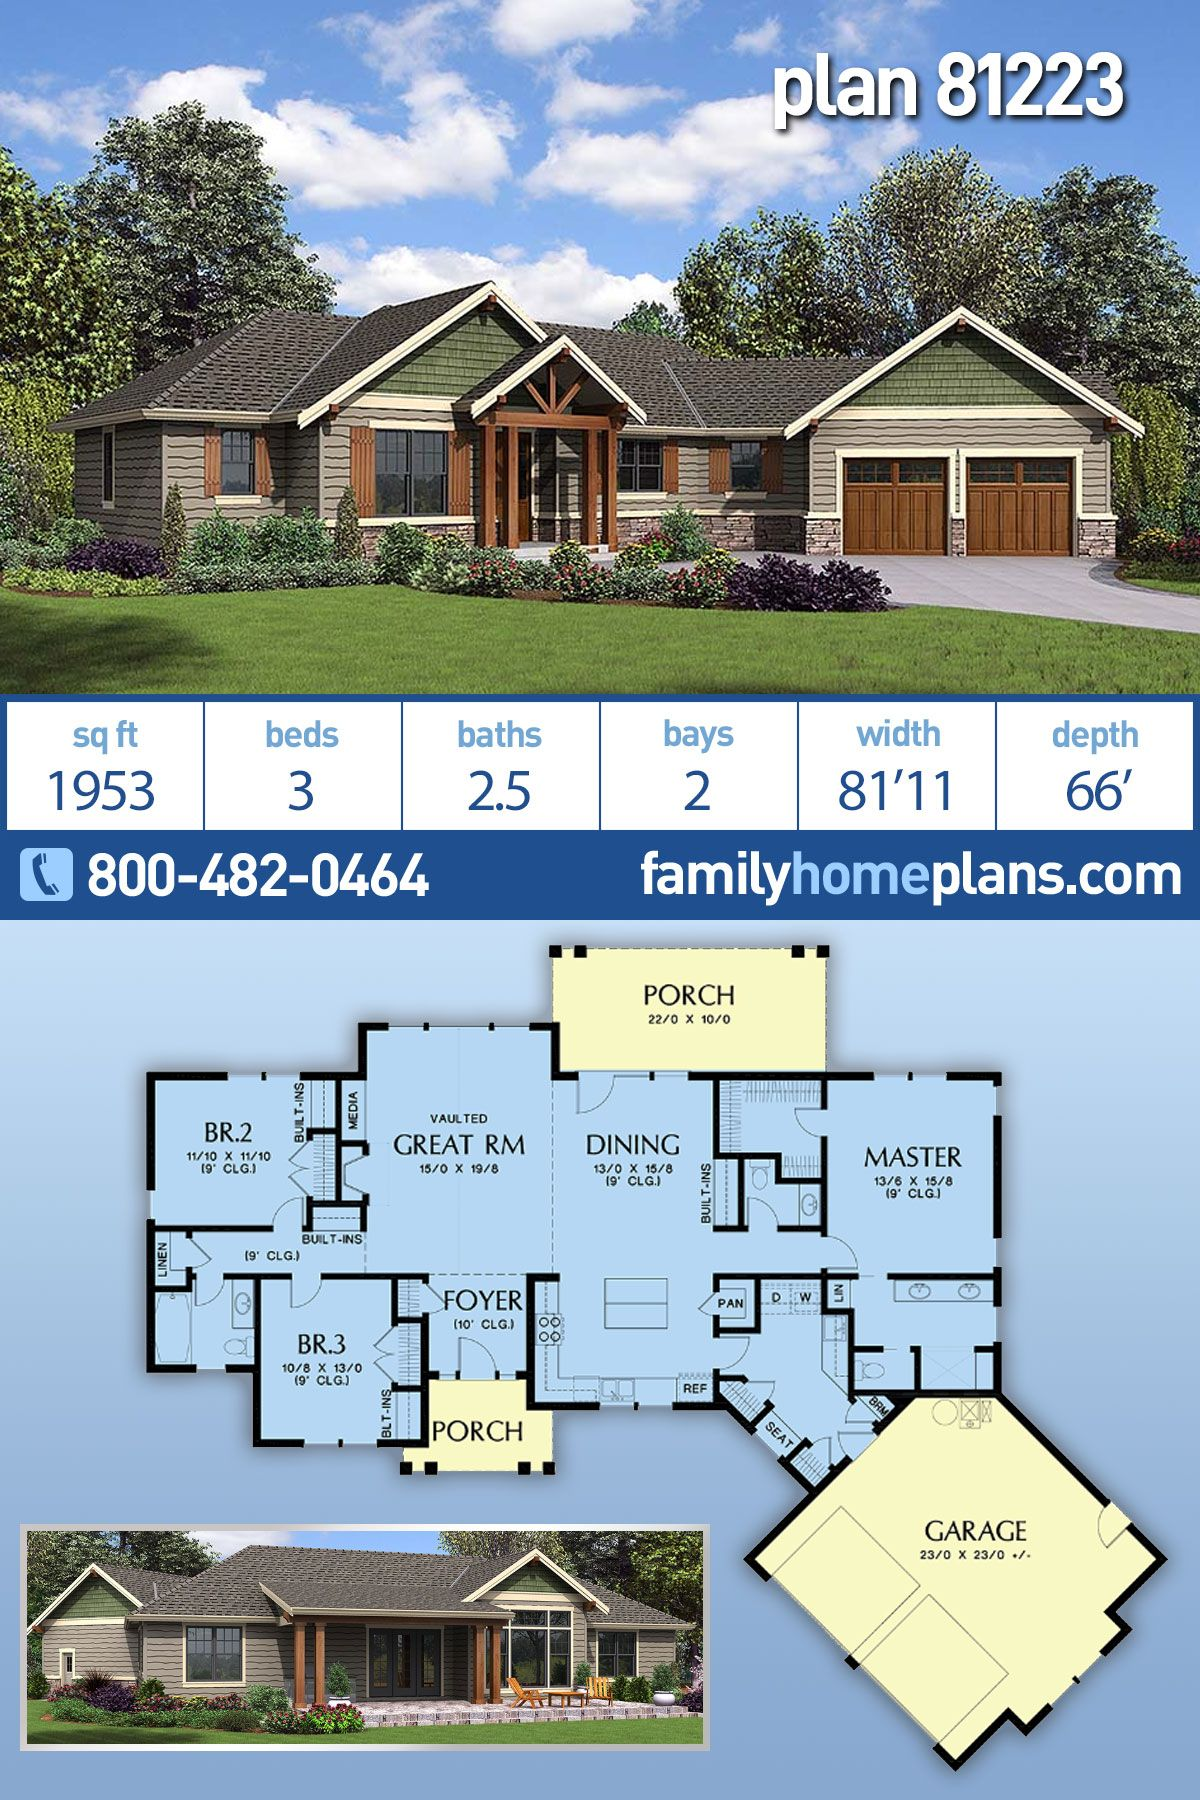 Ranch Style House Plan 81223 With 3 Bed 3 Bath 2 Car Garage Ranch House Floor Plans Family House Plans Ranch Style Homes